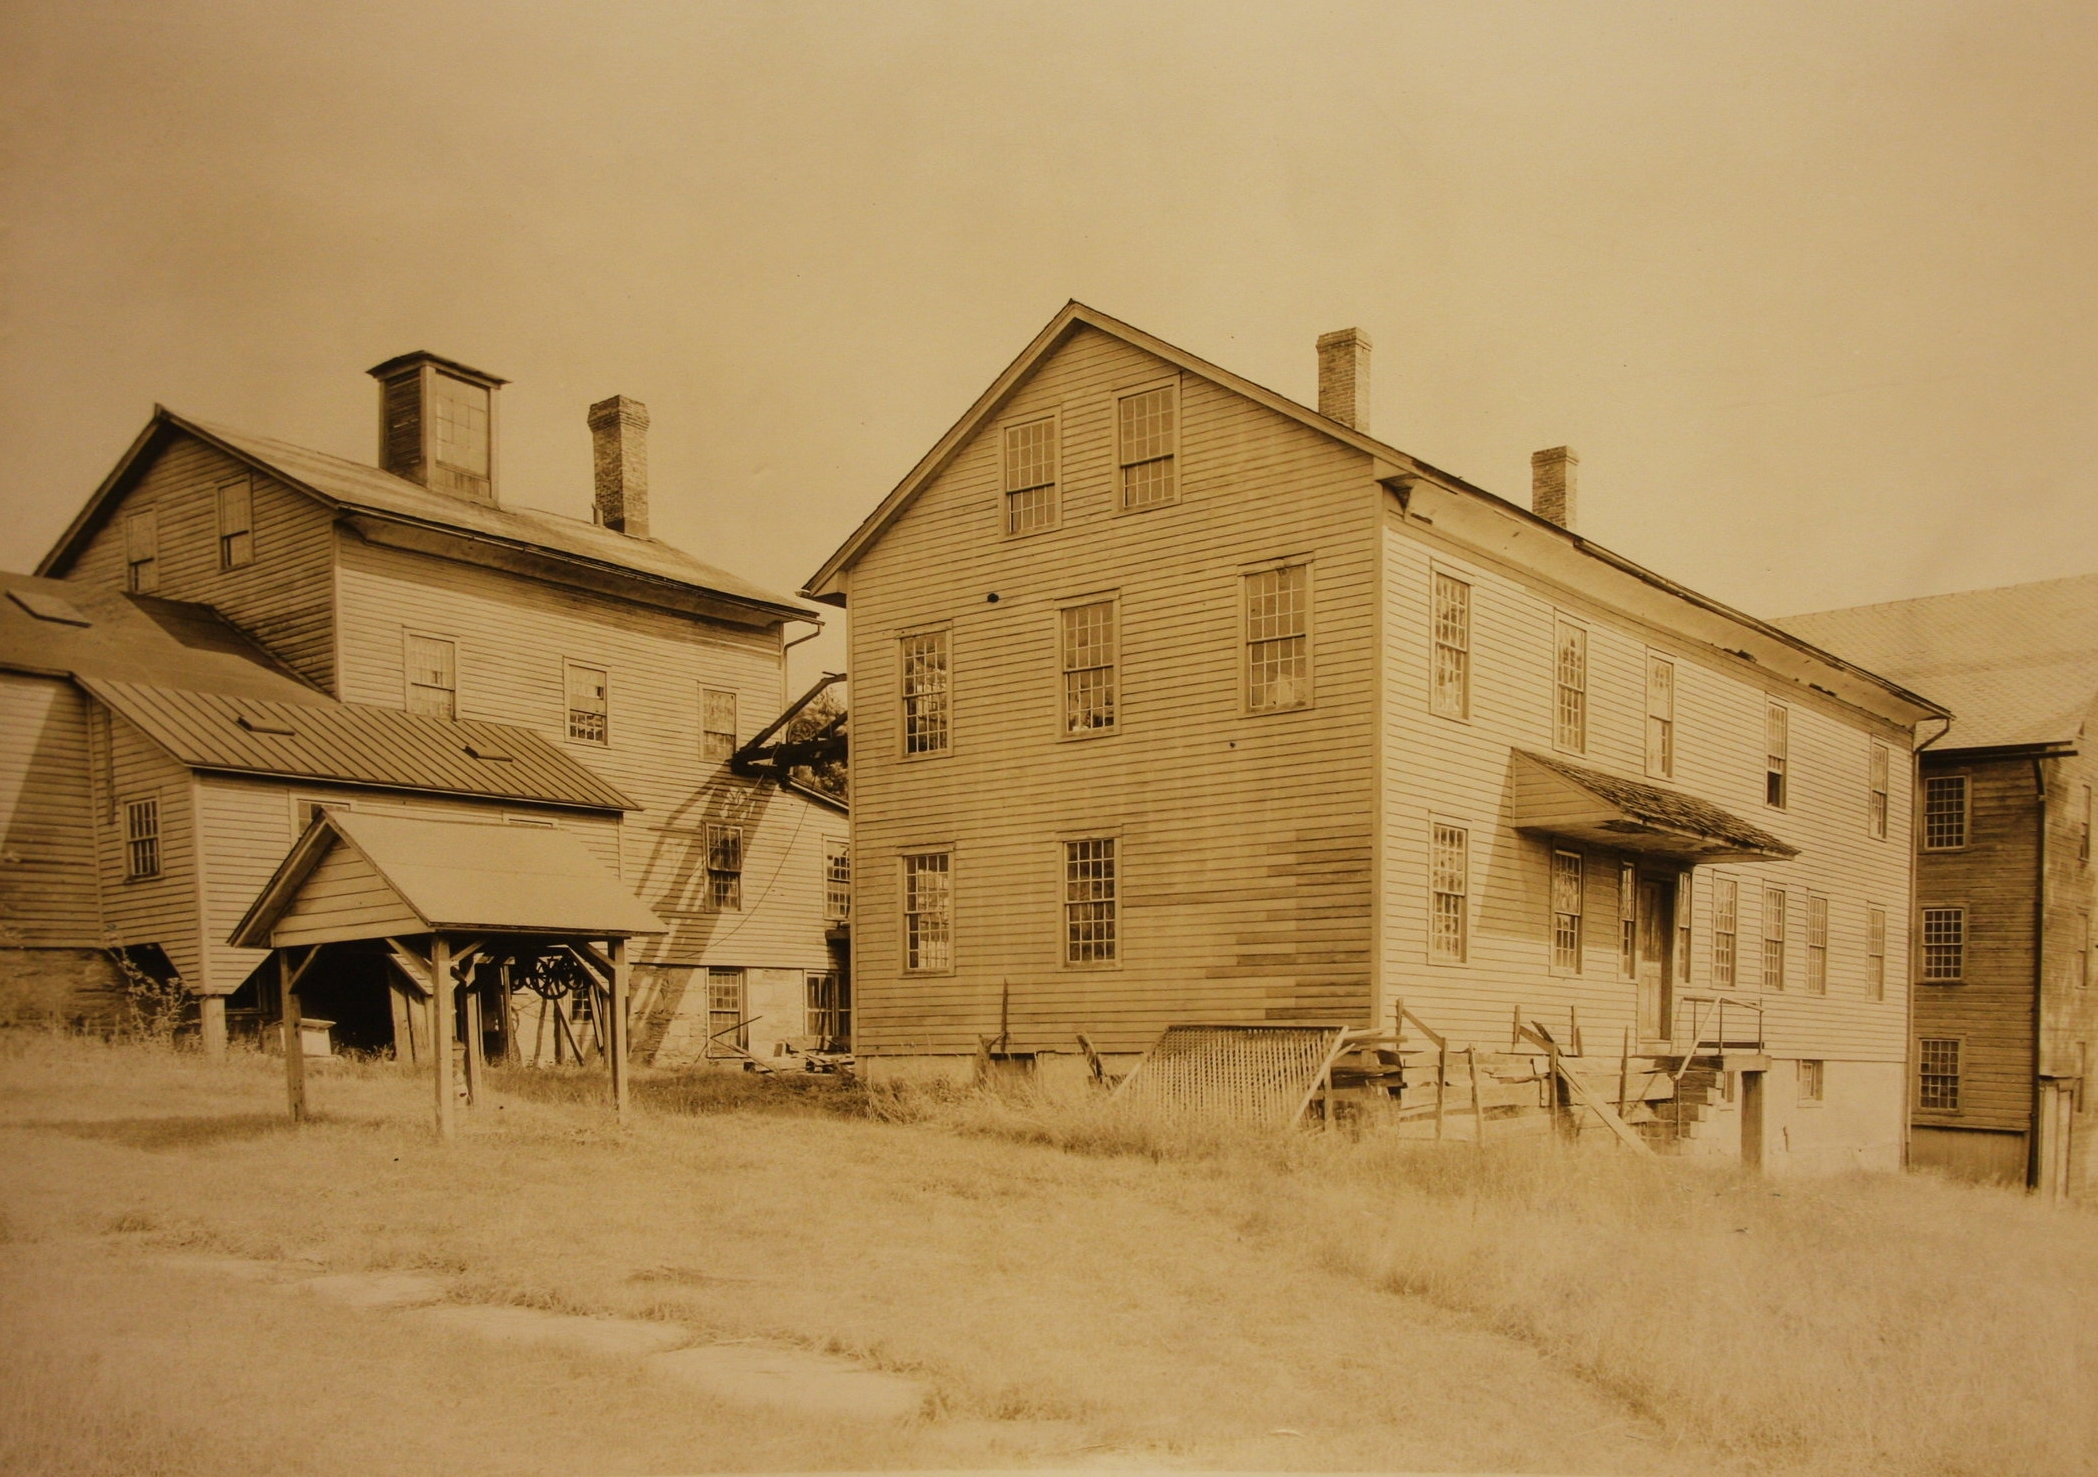 The Herb House at New Lebanon, ca. 1890. Where plants were processed into pharmaceutical products. Edward Andrews Collection, Winterthur Museum, Garden, and Library.